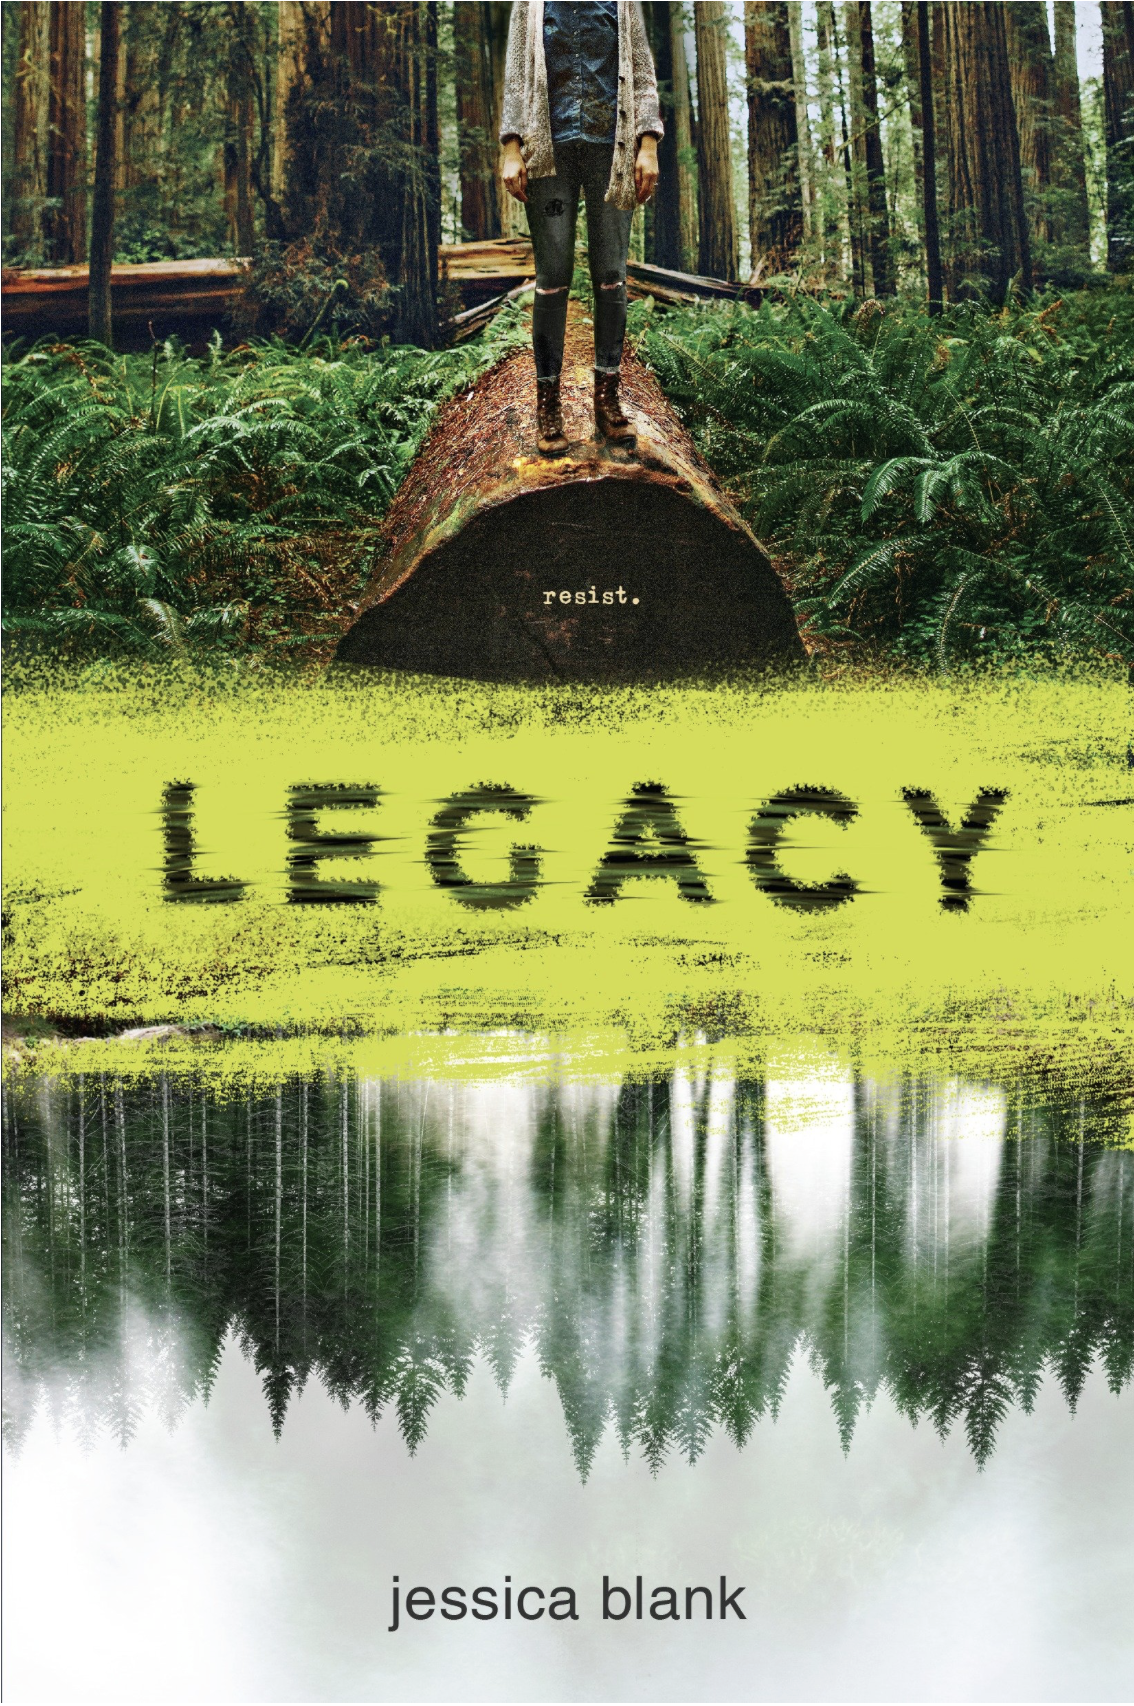 Book: Legacy - By Jessica Blank